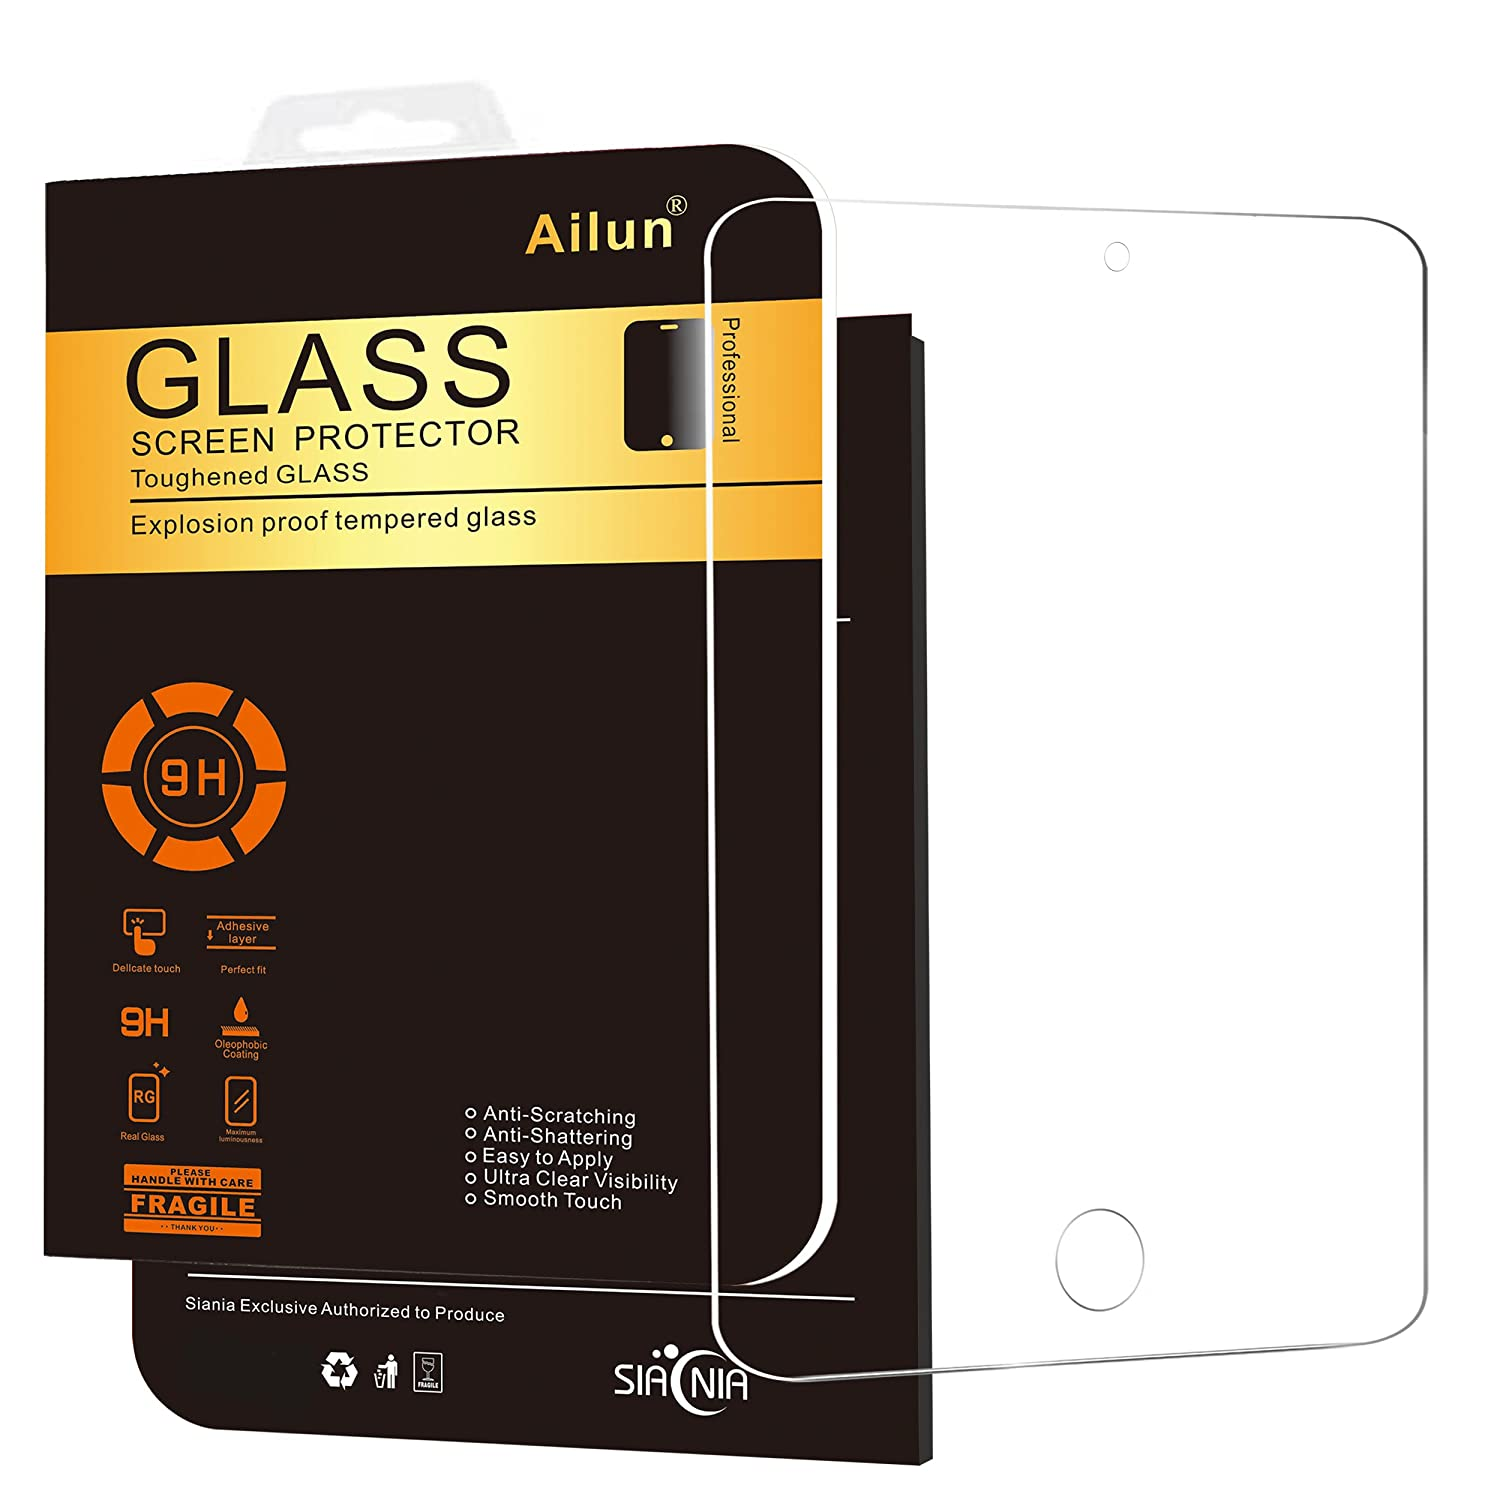 Ailun Screen Protector Compatible iPad Mini 4, Curved Edge Tempered Glass, Scratch-Proof, Case Friendly, Siania Retail Package